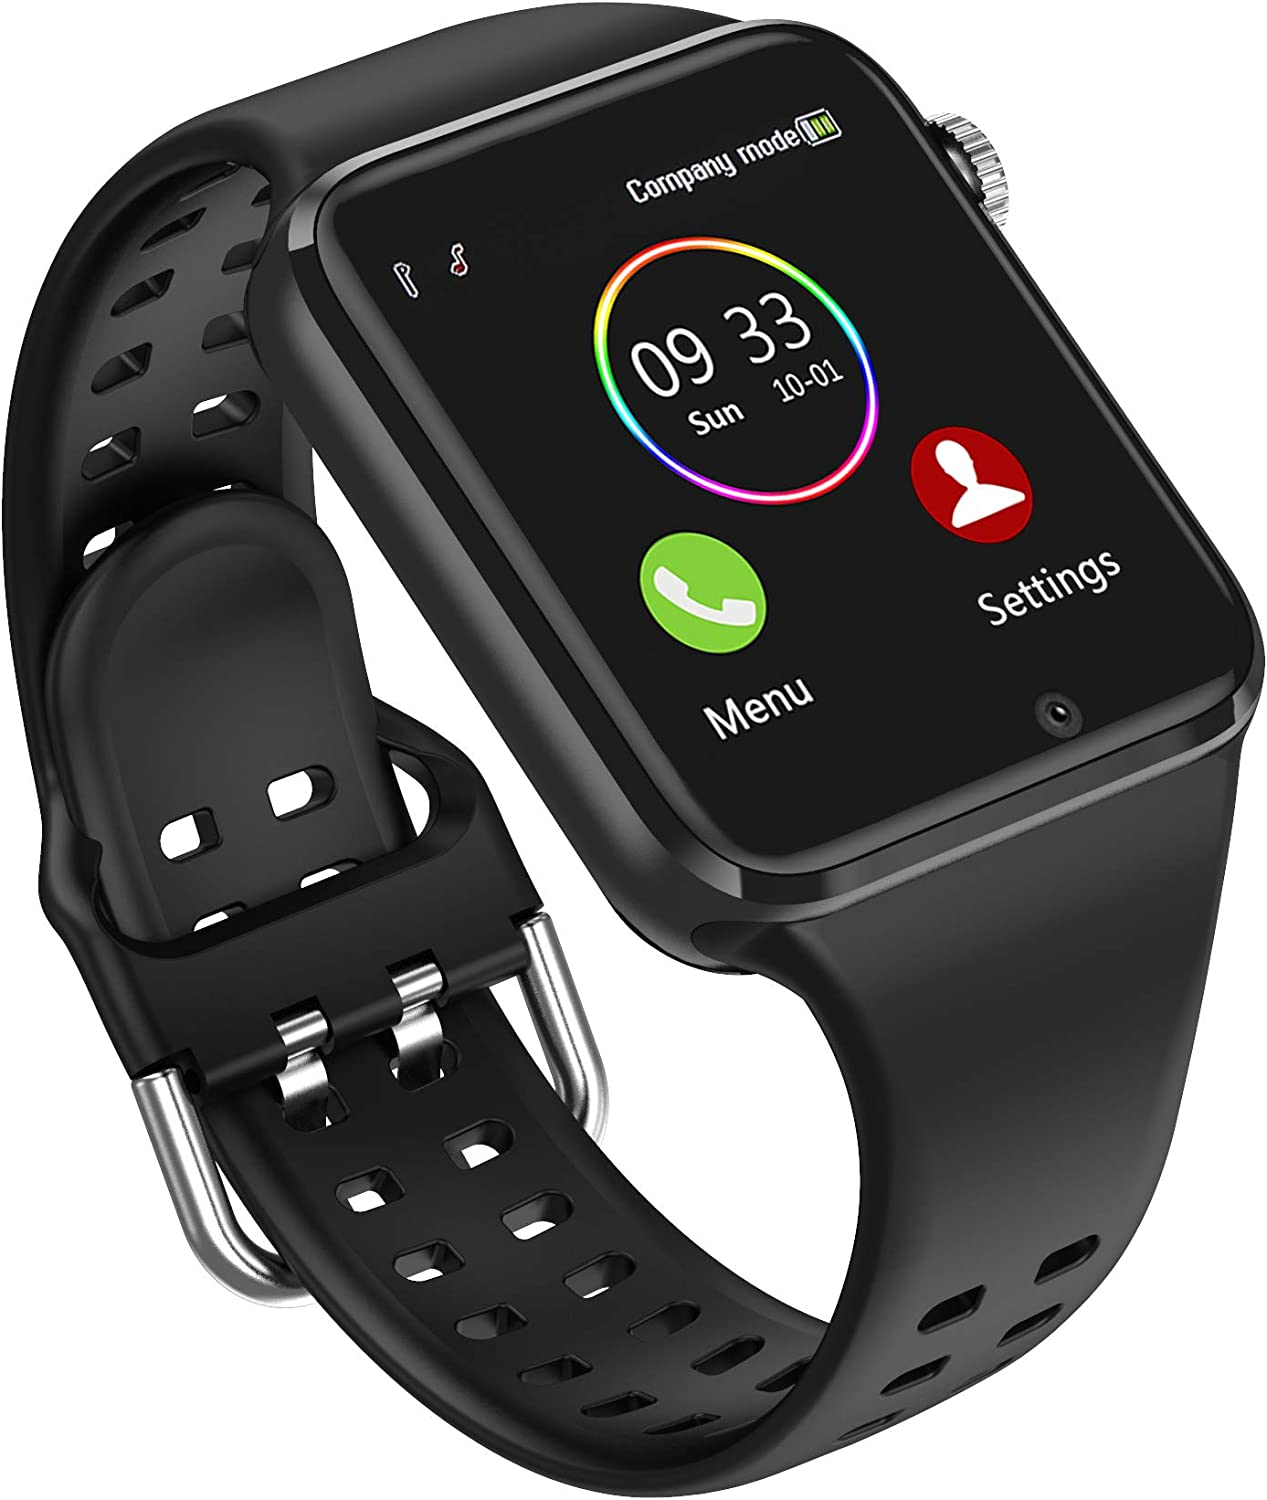 Smart Watch - 321OU Smartwatch for Android iPhone Compatible Samsung LG, Bluetooth Smartwatches Fitness Watch for Men Women Kids with SIM SD Card Slot Camera Pedometer Support Call SMS (Black)